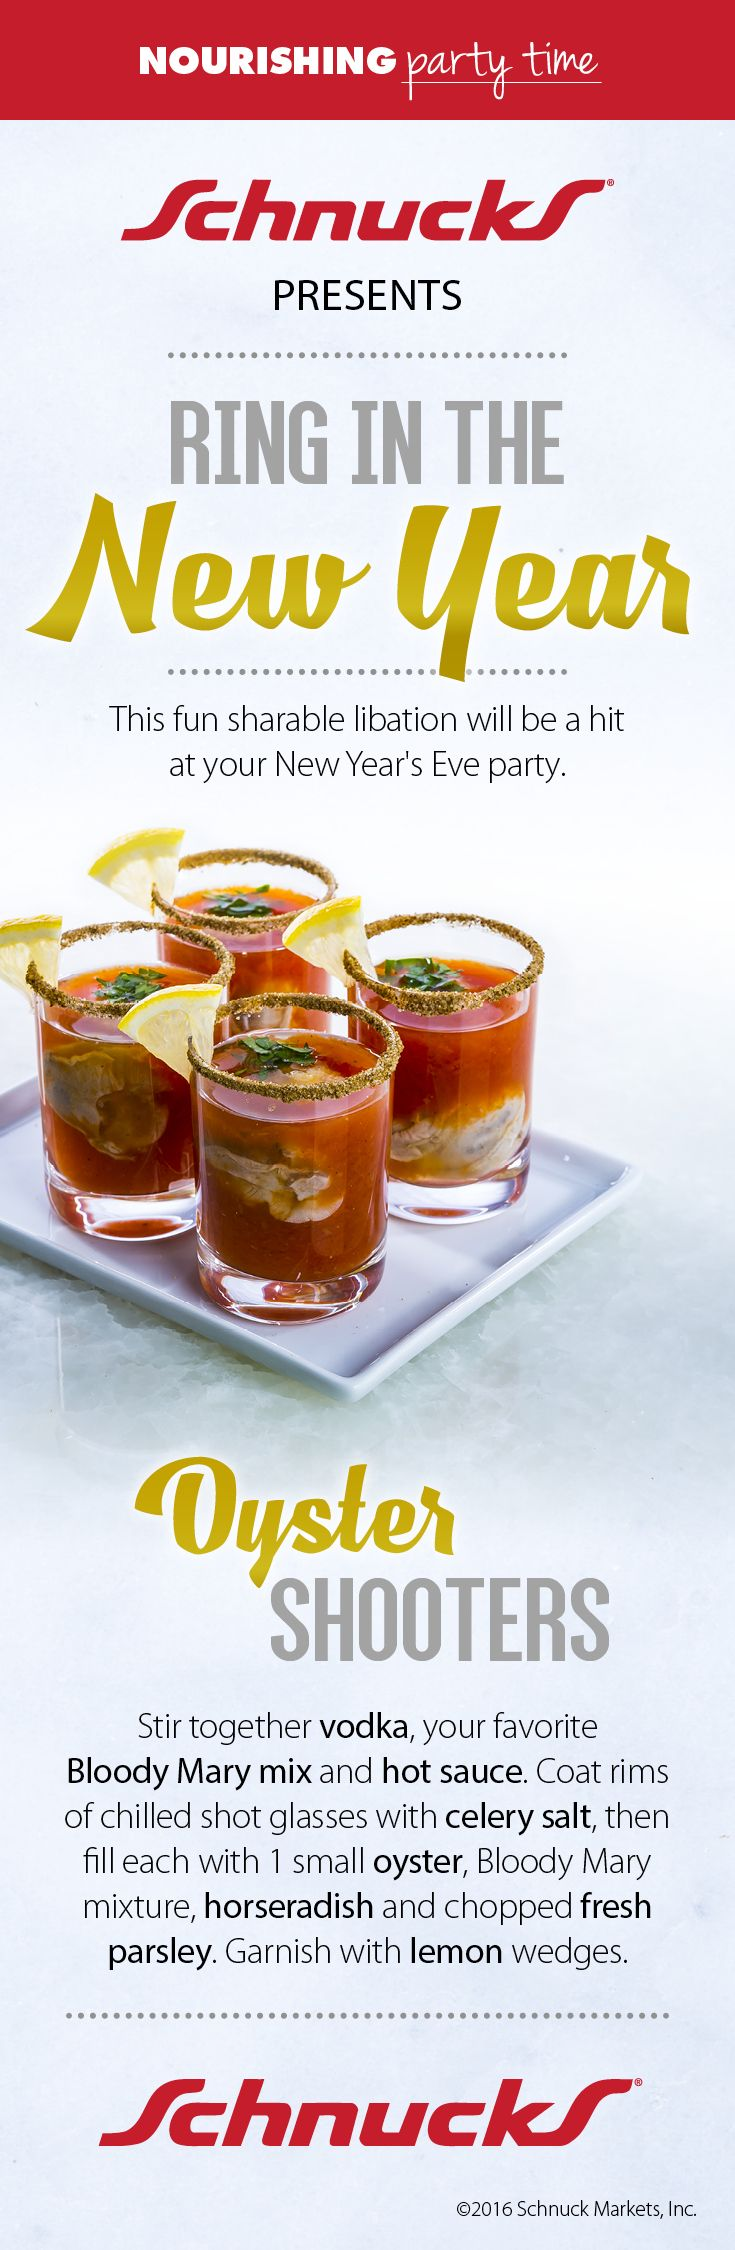 Start the New Year off right with Oyster Shooters! All you need is vodka, Bloody Mary mx, hot sauce, oysters, horseradish and chopped fresh parsley.